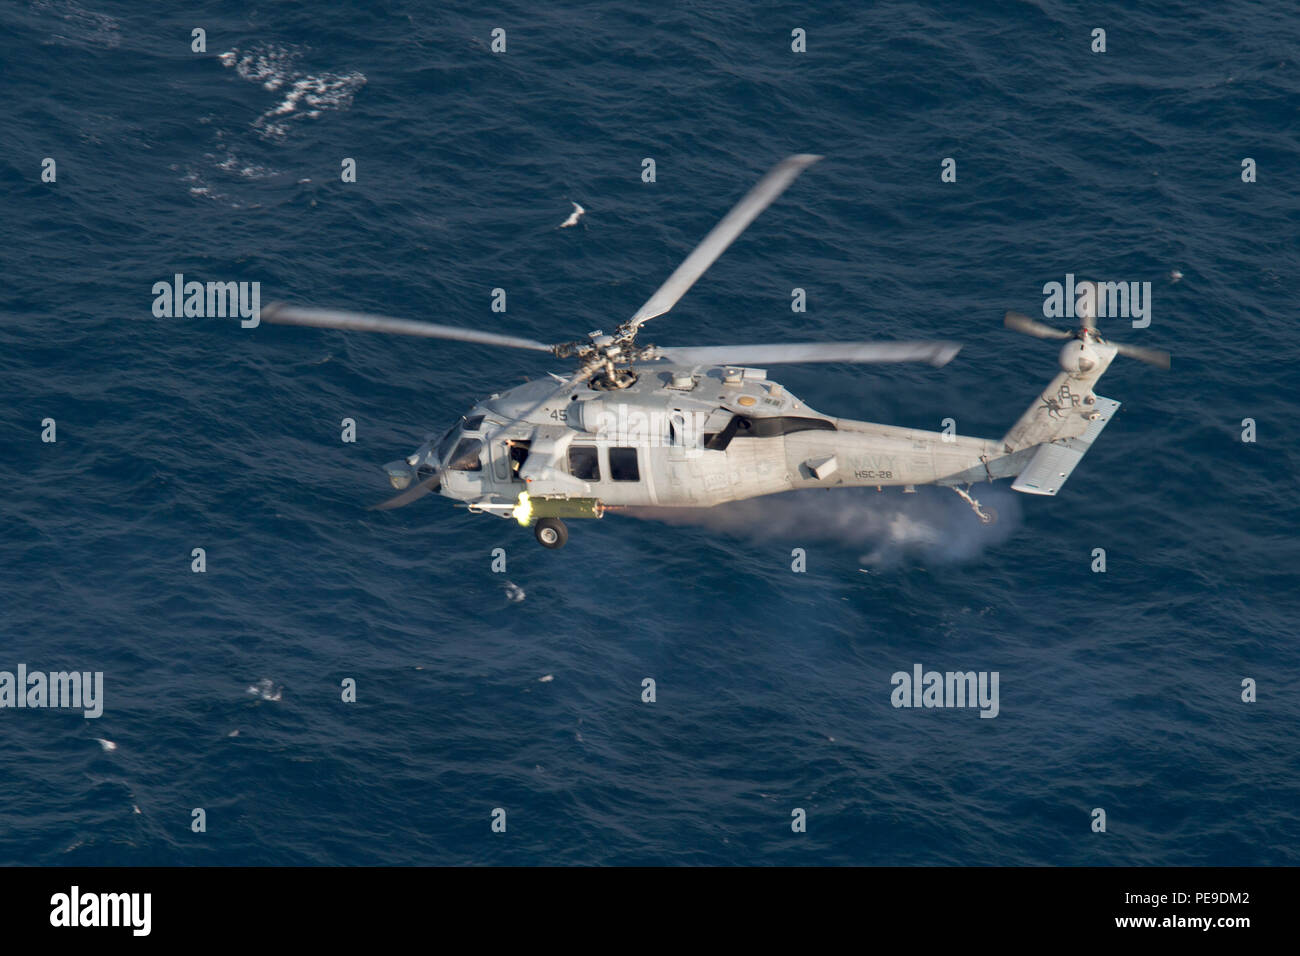 "151114-N-AX638-584 GULF OF ADEN (Nov. 14, 2015) An MH-60S Seahawk, attached to Helicopter Sea Combat Squadron (HSC) 28, the ""Dragon Whales,"" fires an inert 2.75 inch 'Mighty Mouse' rocket during a rocket exercise. HSC-28 is embarked aboard the amphibious assault ship USS Kearsarge (LHD 3) as part the Kearsarge Amphibious Ready Group (ARG), and with the embarked 26th Marine Expeditionary Unit (MEU), is deployed in support of maritime security operations and theater security cooperation efforts in the U.S. 5th Fleet area of operations. (U.S. Navy photo by Mass Communication Specialist Seaman Tyl - Stock Image"